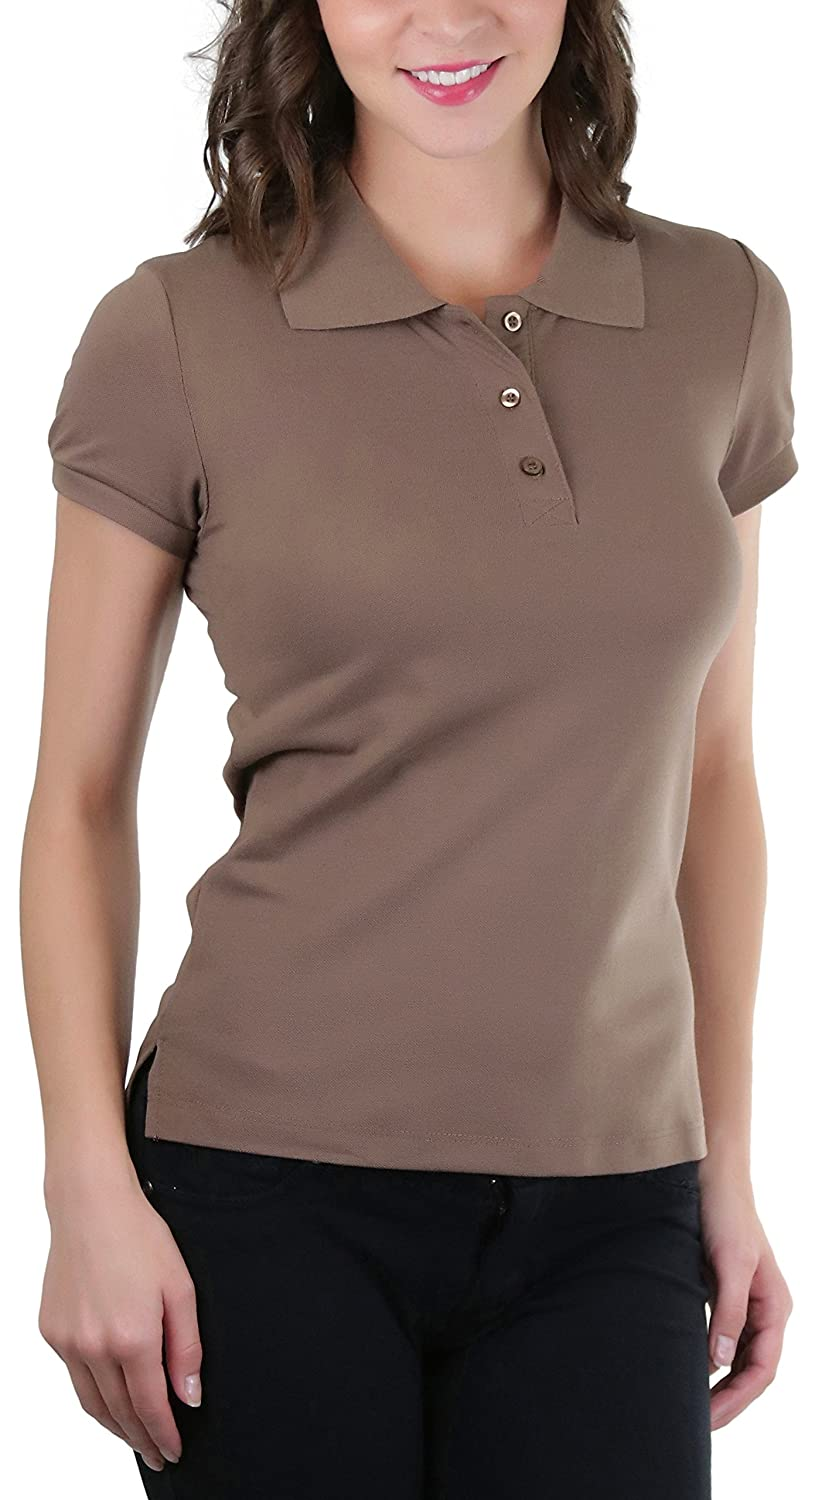 79168358 5% spandex. Feel comfort and elegance in this wonderful top. Short Sleeves.  Slim Fit. Collared Button Neckline. Polo. Pique Style. Pull On Closure.